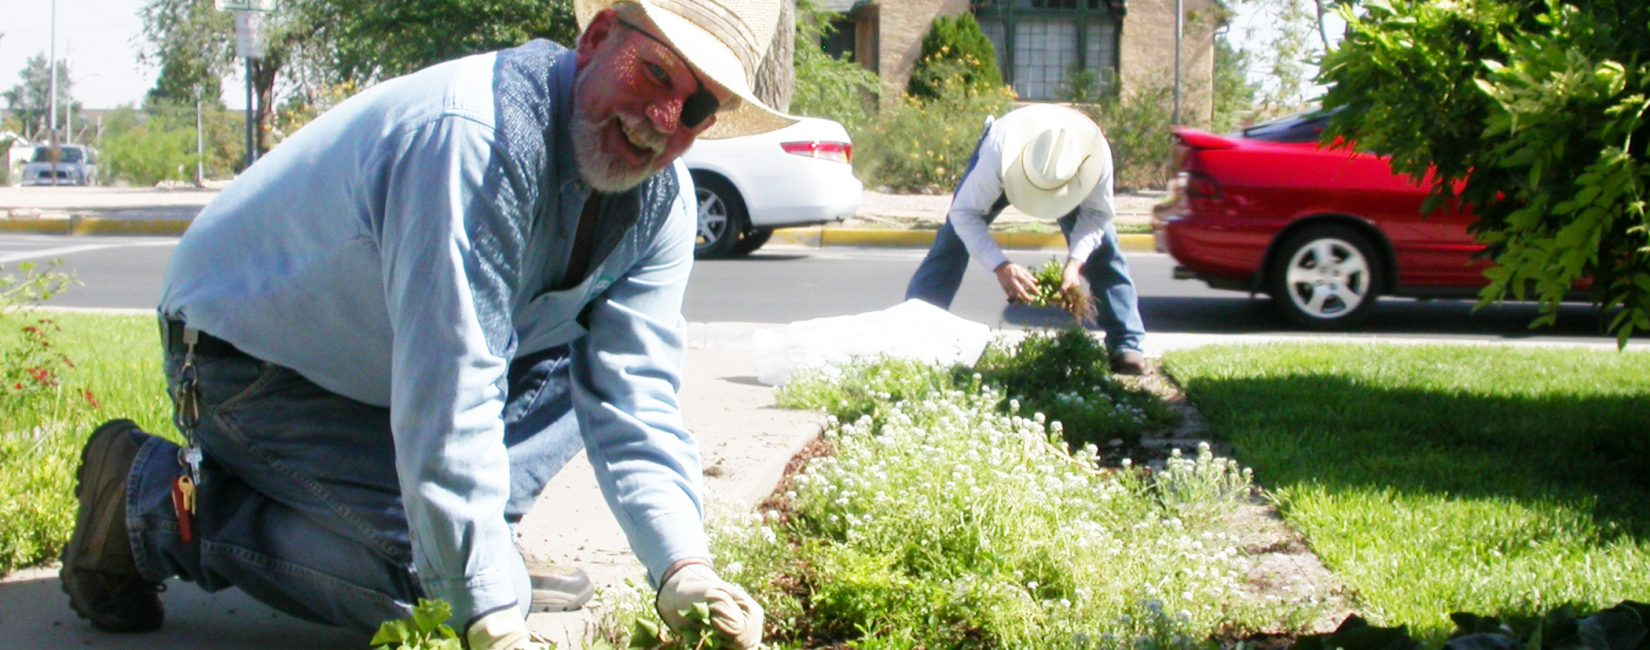 U of New Mexico grounds keepers working on garden.